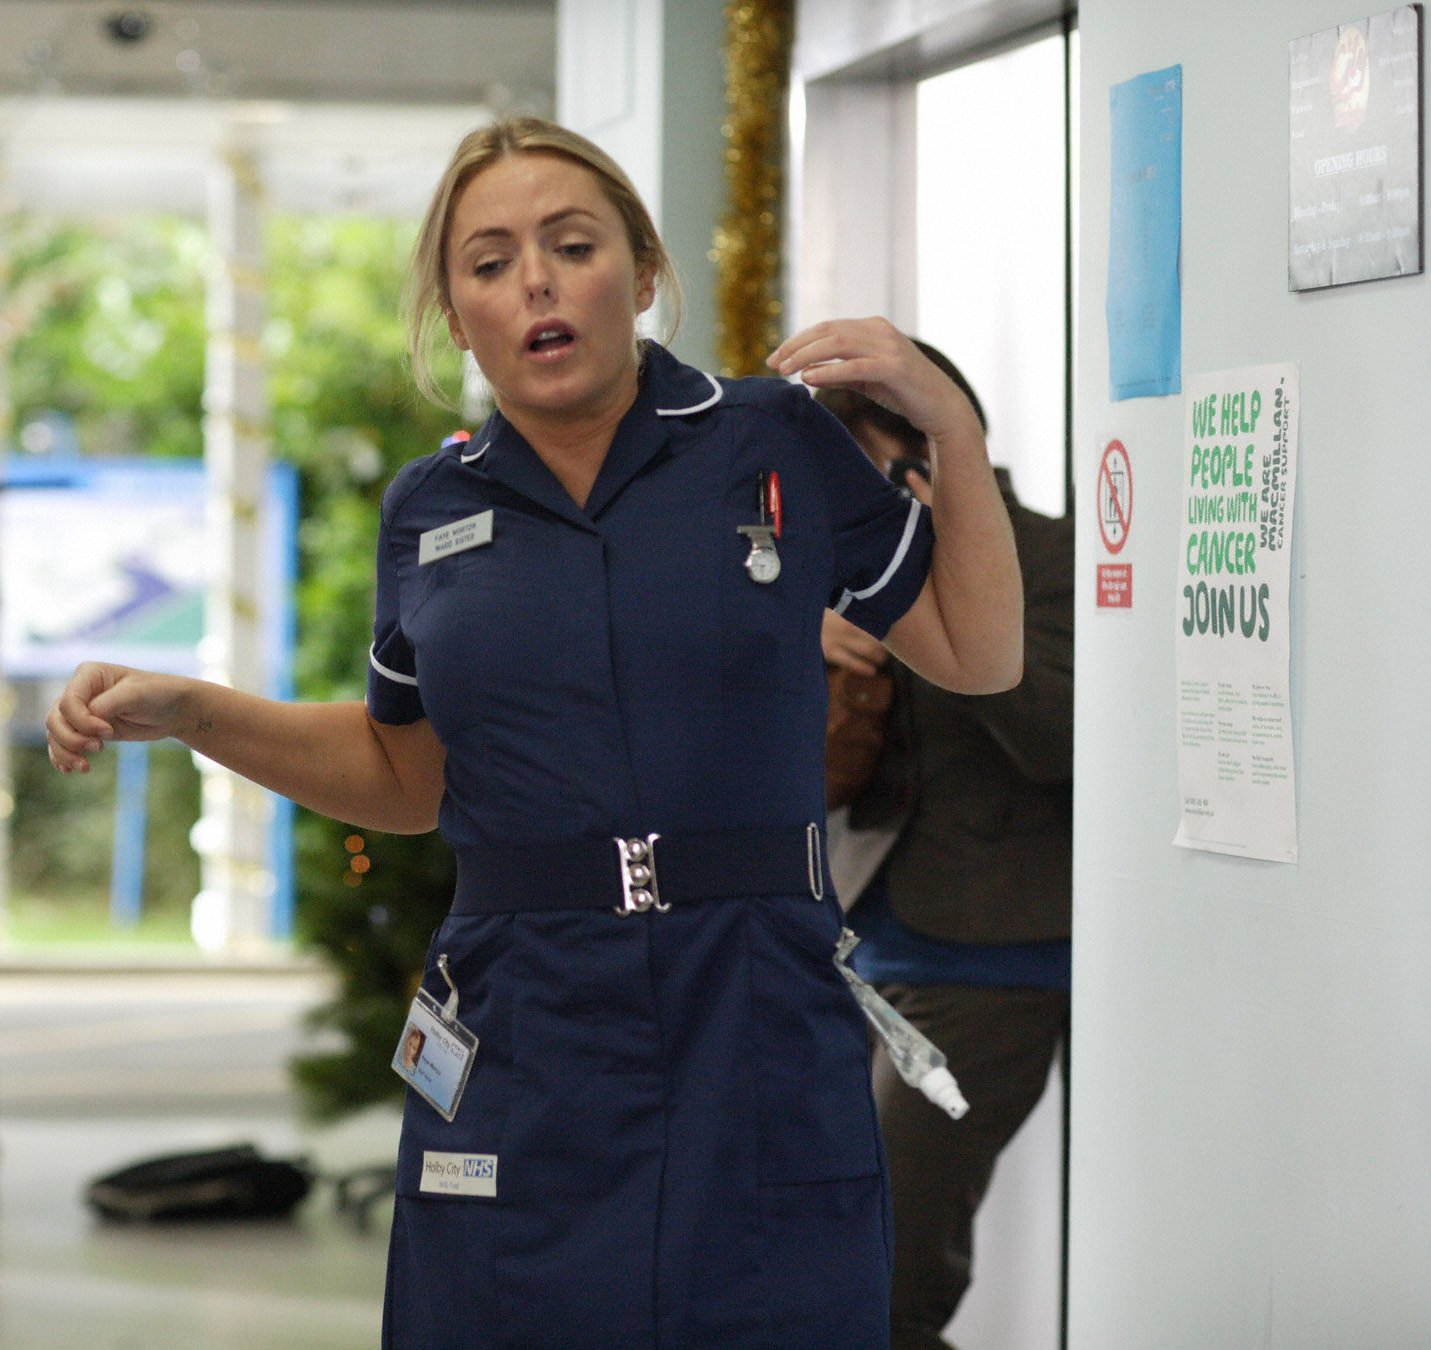 Disaster strikes at Holby